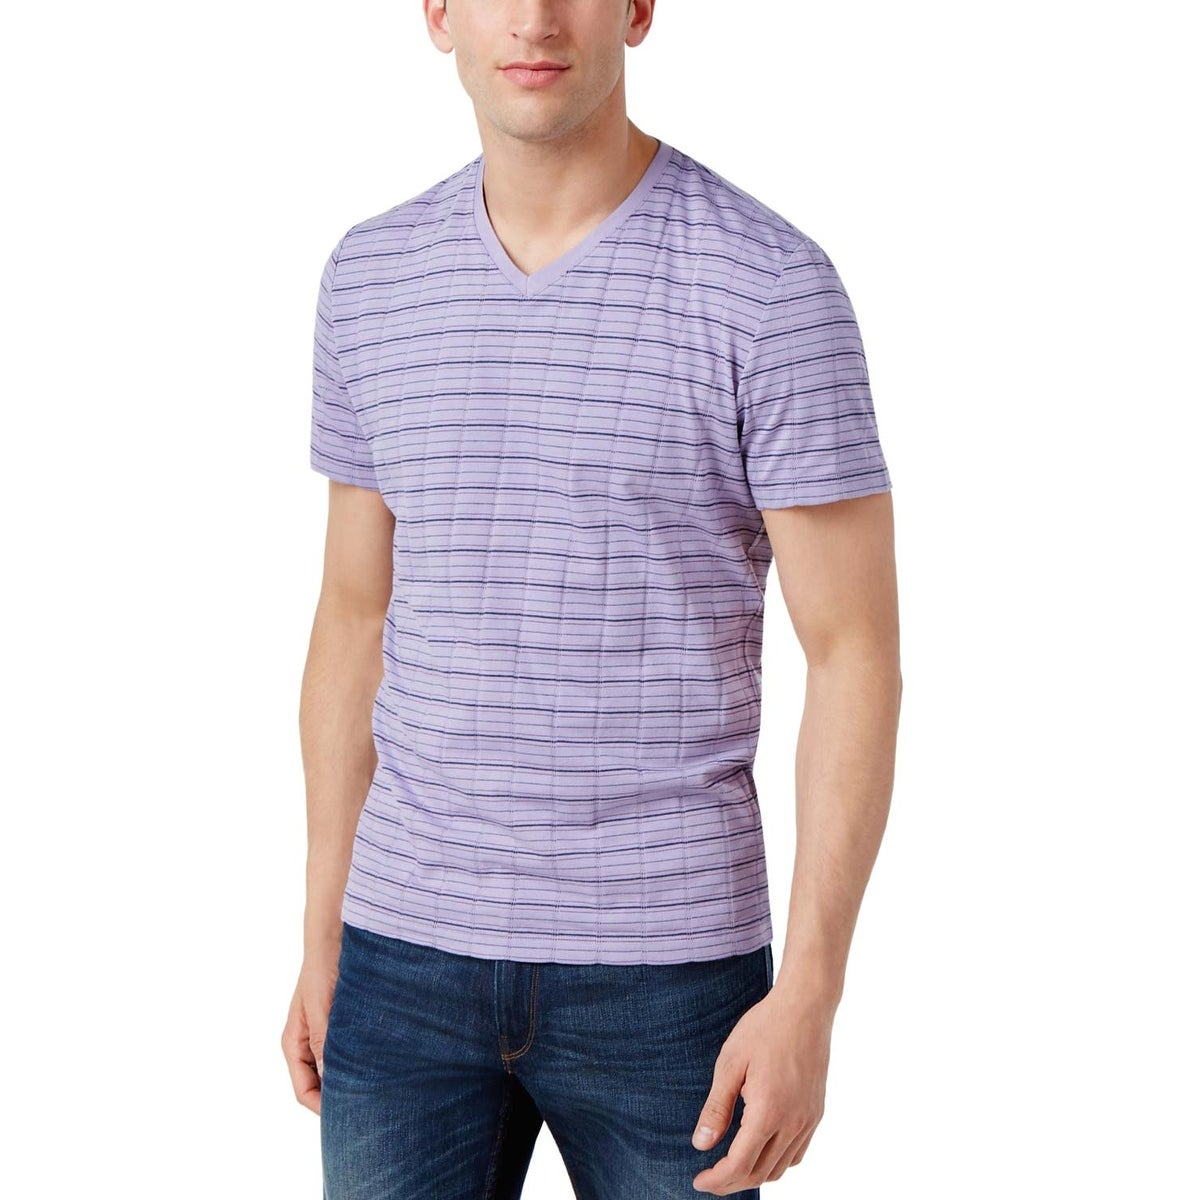 fb11f1539318 Shop Alfani Black Label Regular Fit Violet Dust Striped V-Neck T-Shirt  Small S - Free Shipping On Orders Over $45 - Overstock - 19796082